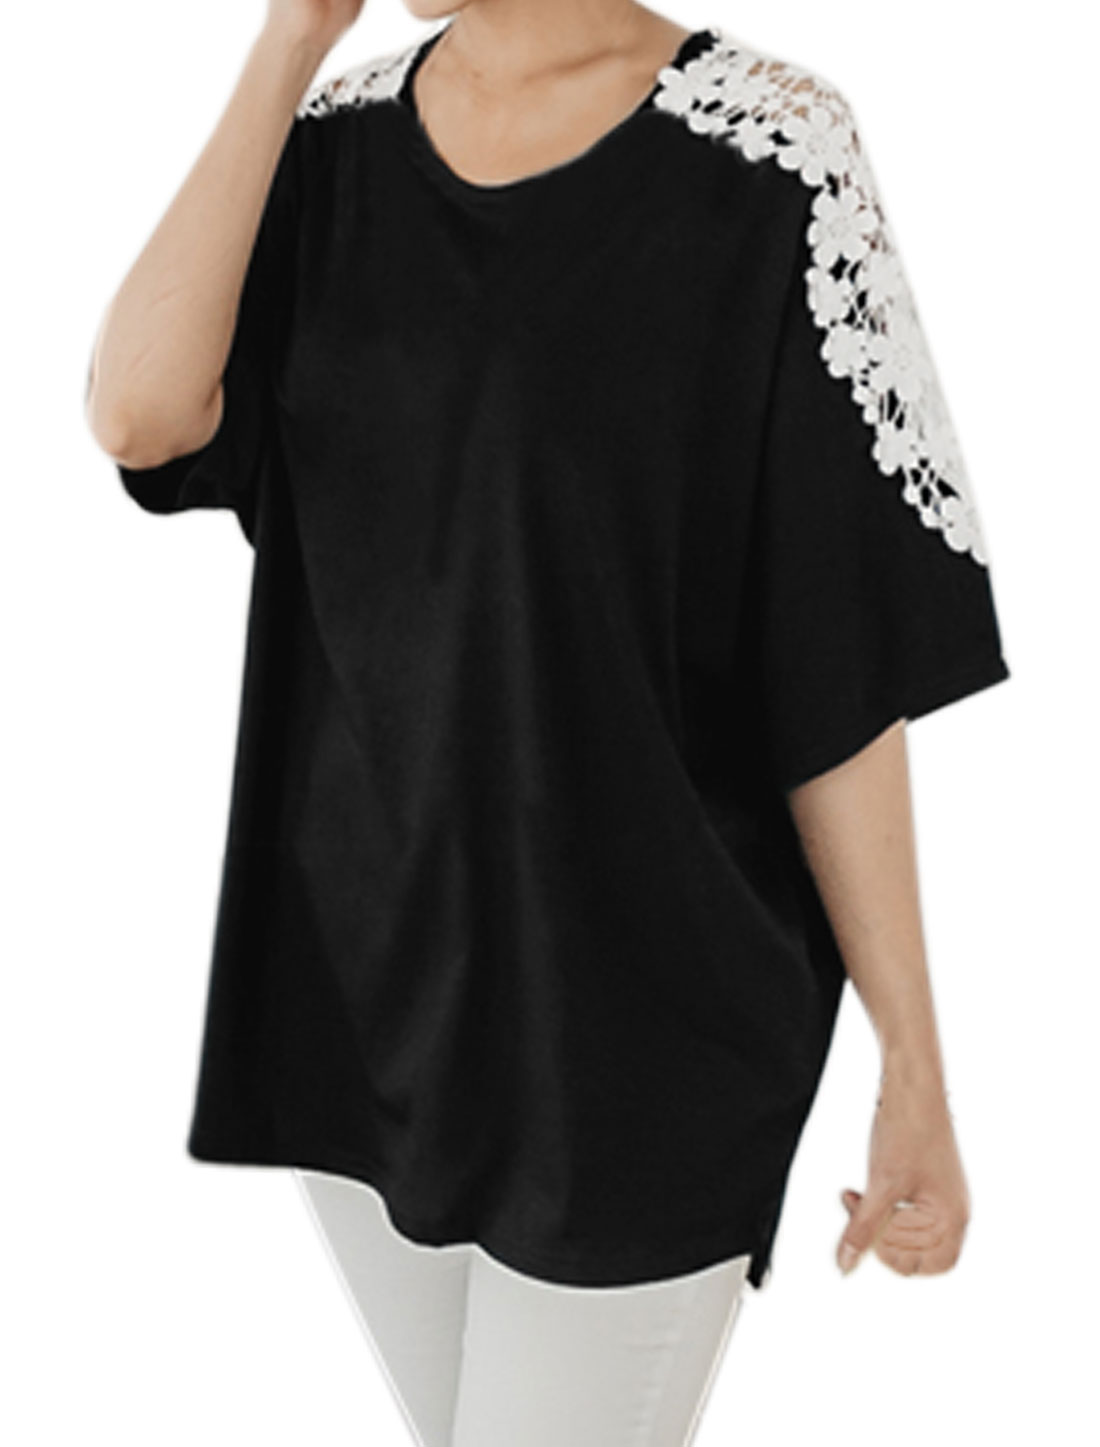 Women Batwing Sleeves Crochet Panel Loose Tunic Blouse Black XS